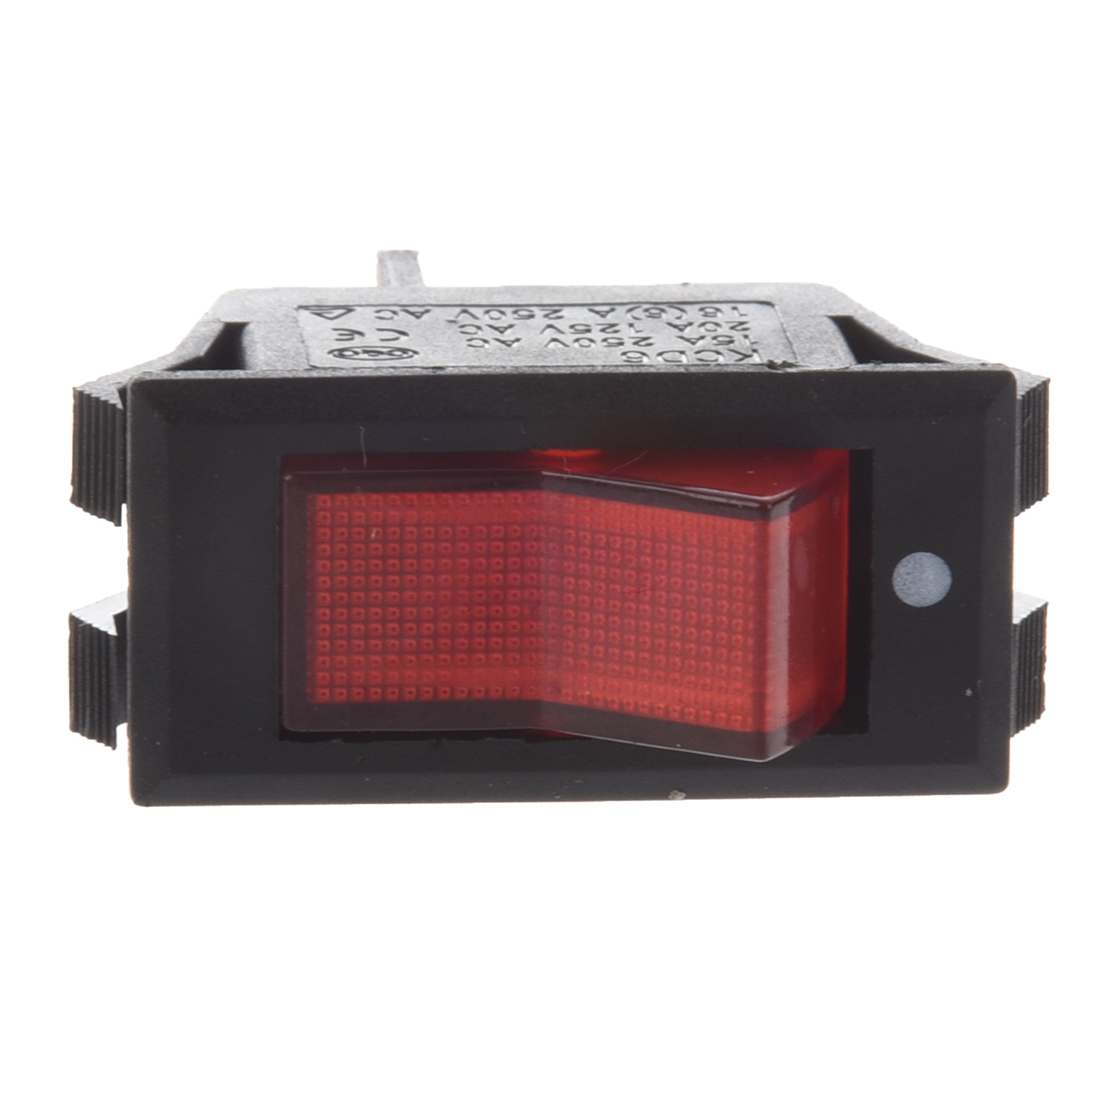 Switches Active 10 Pcs X Red Neon Light Lamp On/off Spst Boat Rocker Switch 15a/250v 20a/125v Ac